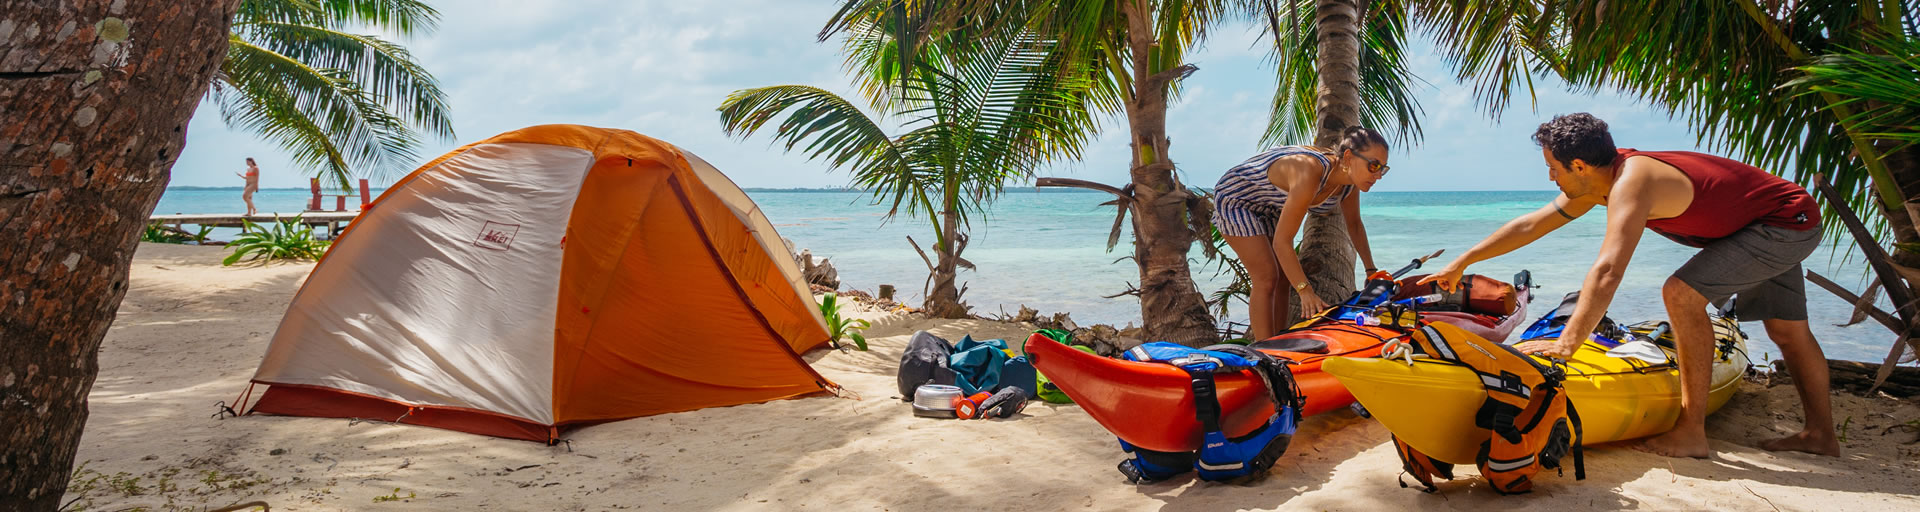 Sea Kayak Camping in Belize - Kayak Rentals in Belize